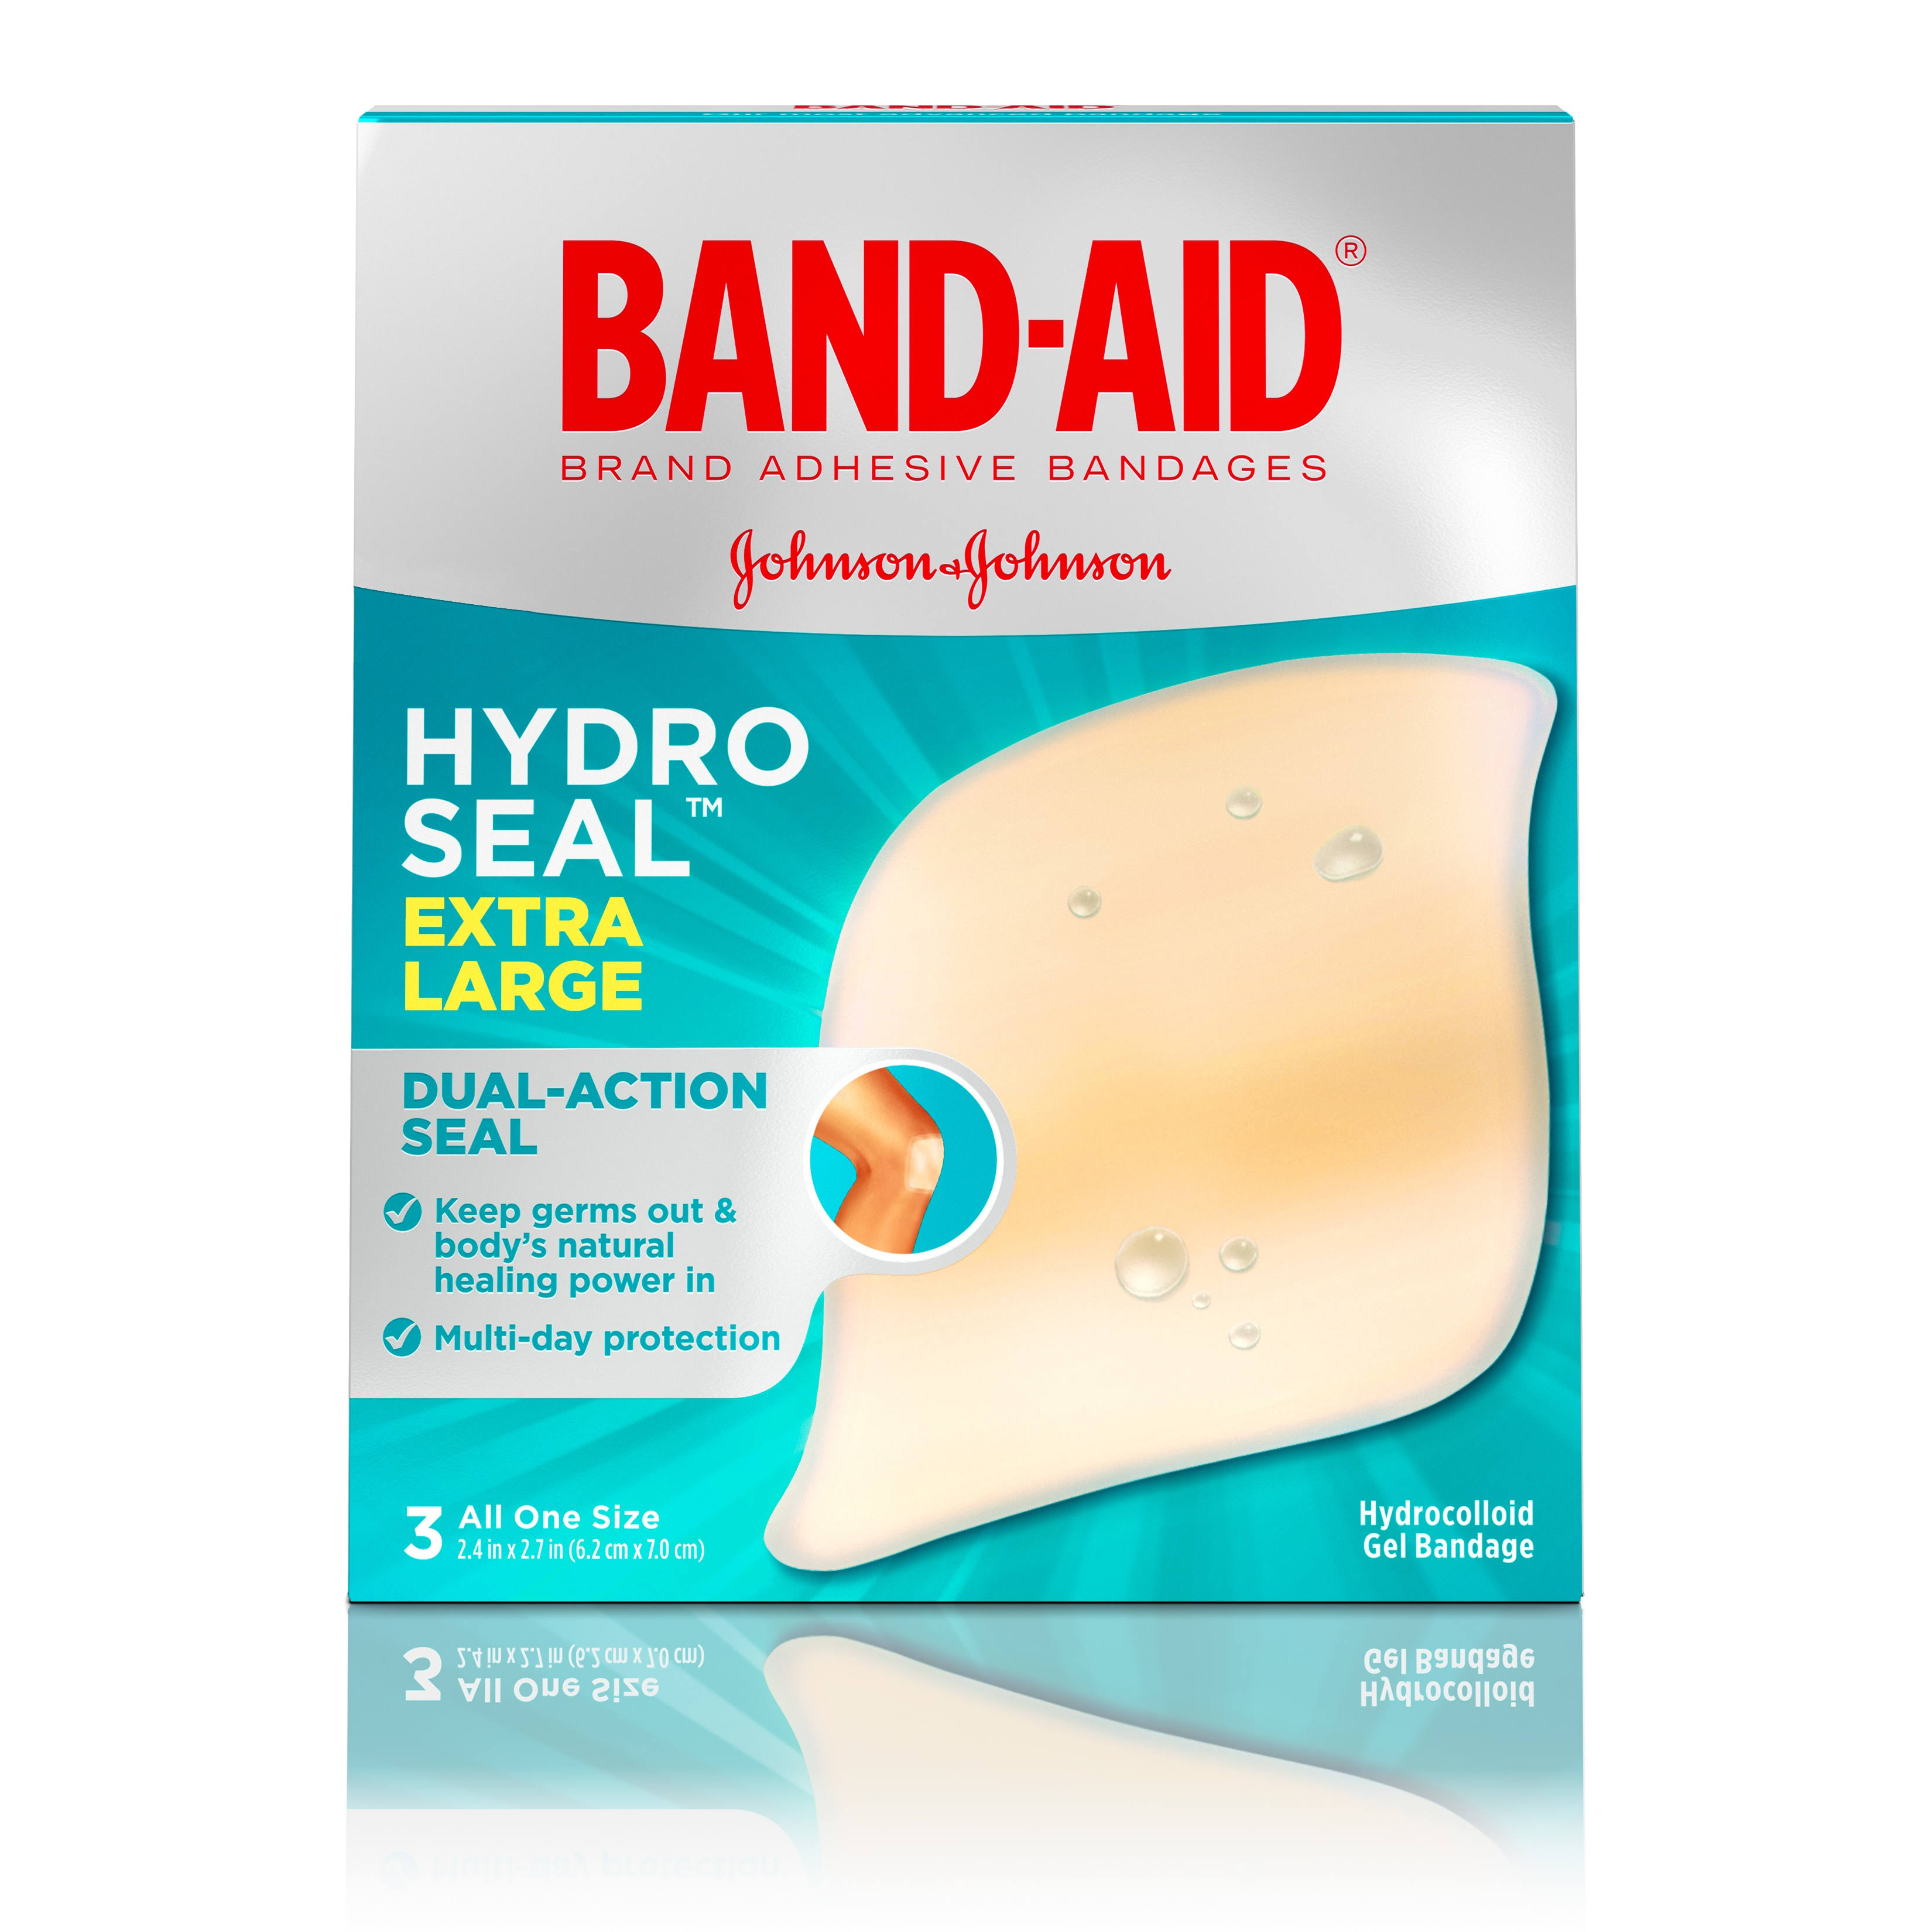 Band Aid Hydro Seal Bandages, Adhesive, Extra Large - 3 bandages